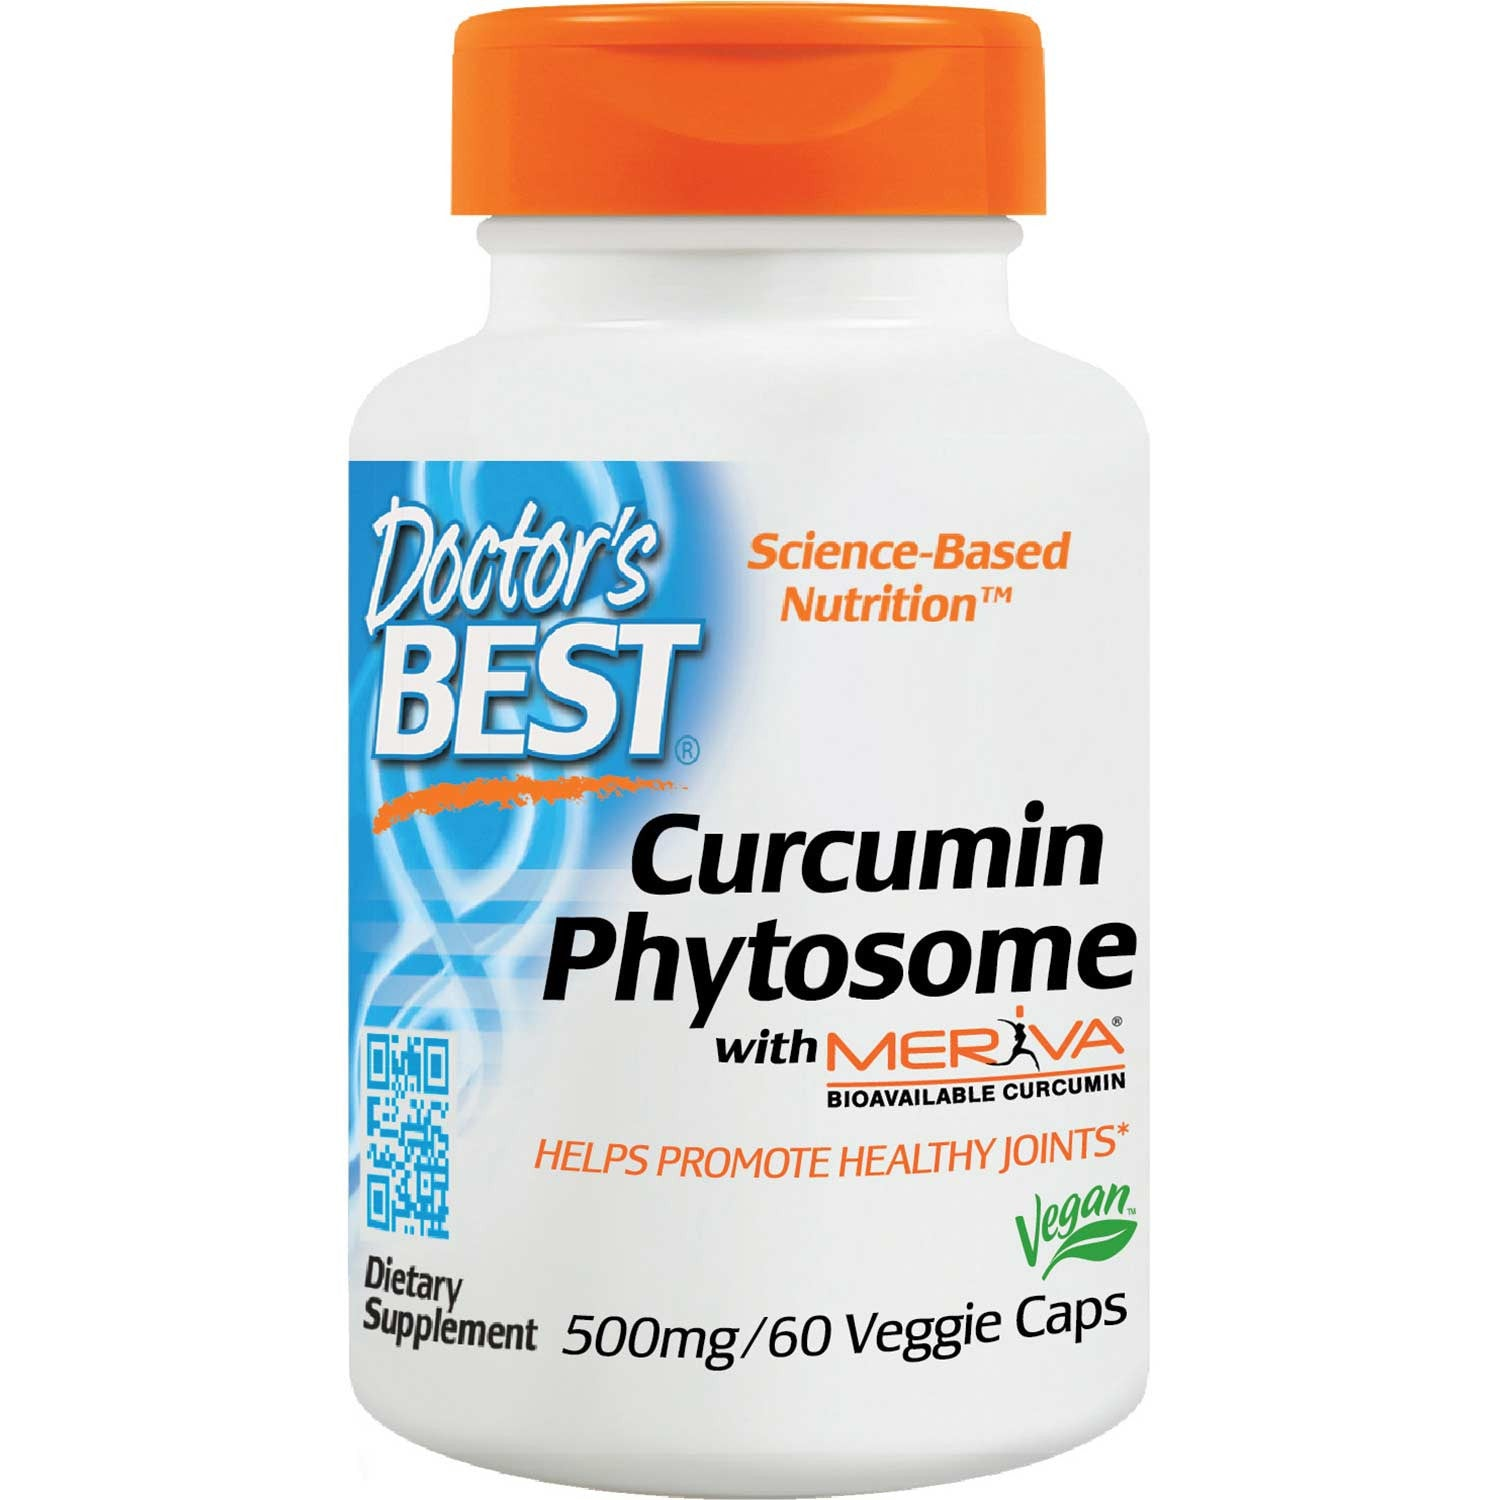 Doctor's Best Curcumin Phytosome with Meriva 500mg, 60 vcaps-NaturesWisdom